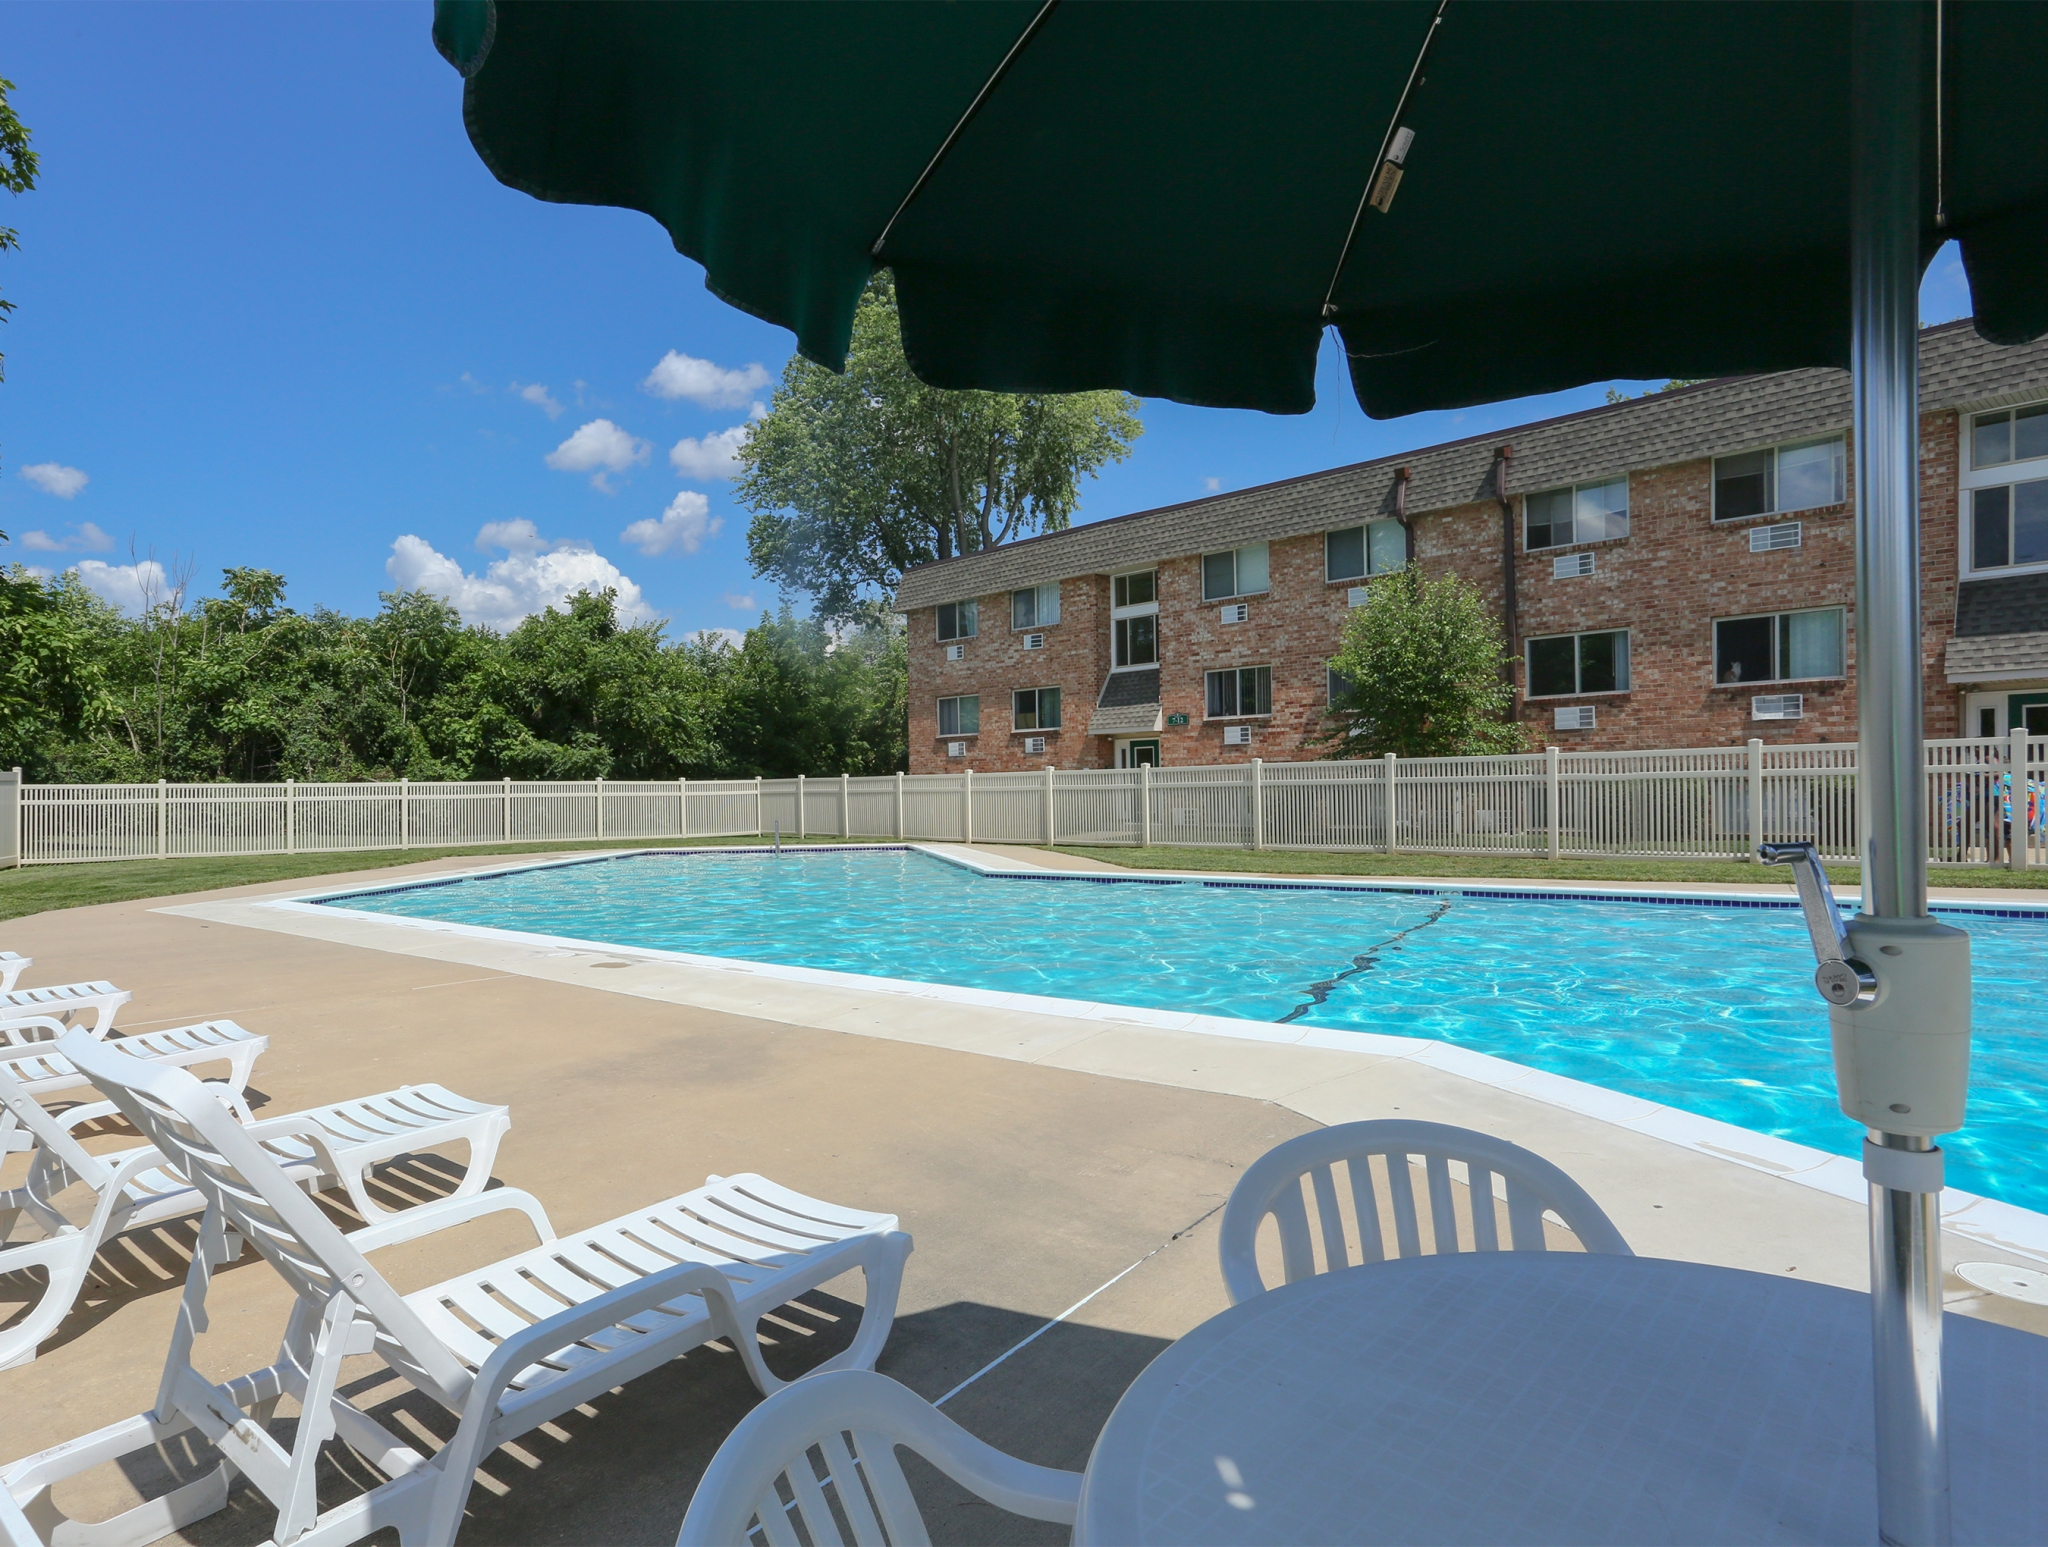 Swimming Pool | Penndel Pennsylvania Apartments for Rent | Mill Creek Village Apartments